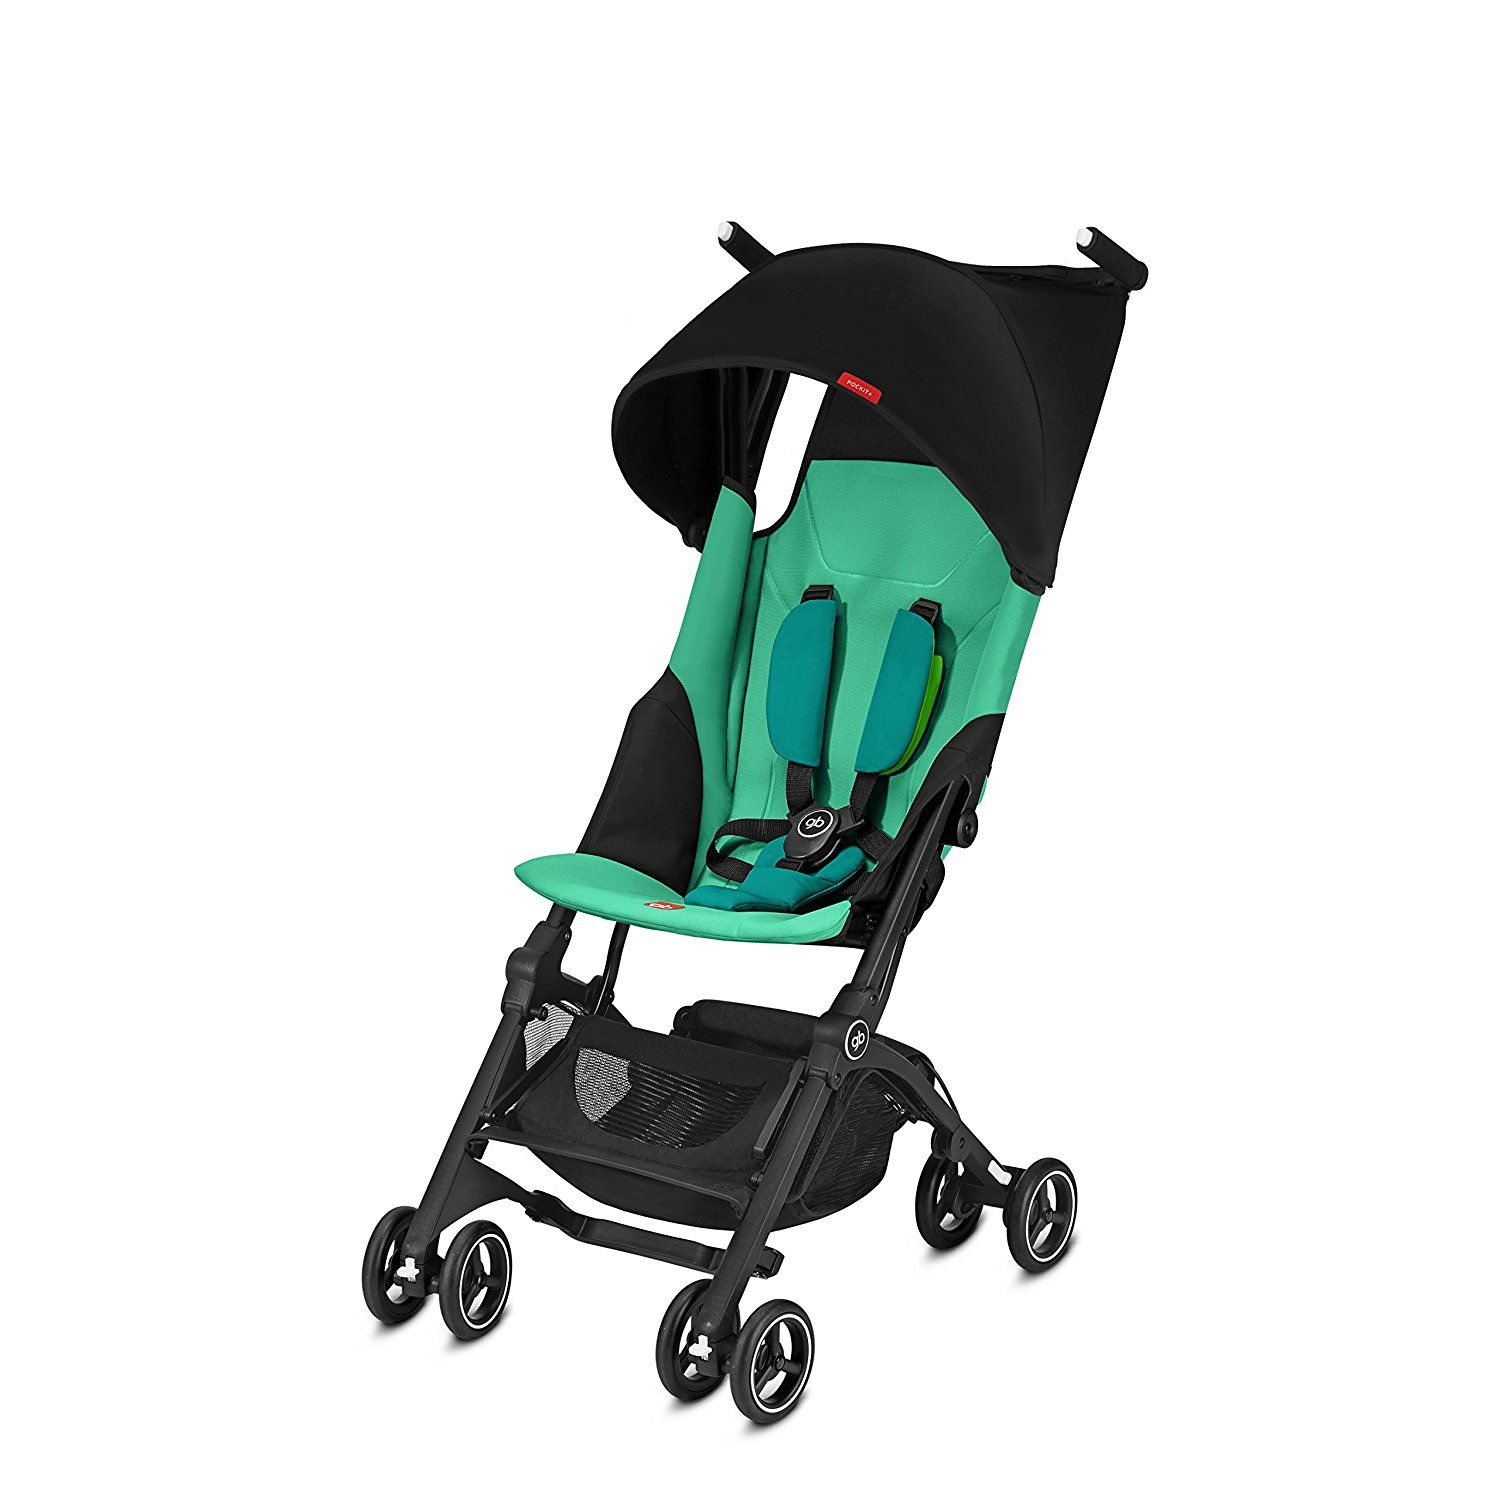 gb Gold Pockit Plus Pushchair, Laguna Blue. Suitable from